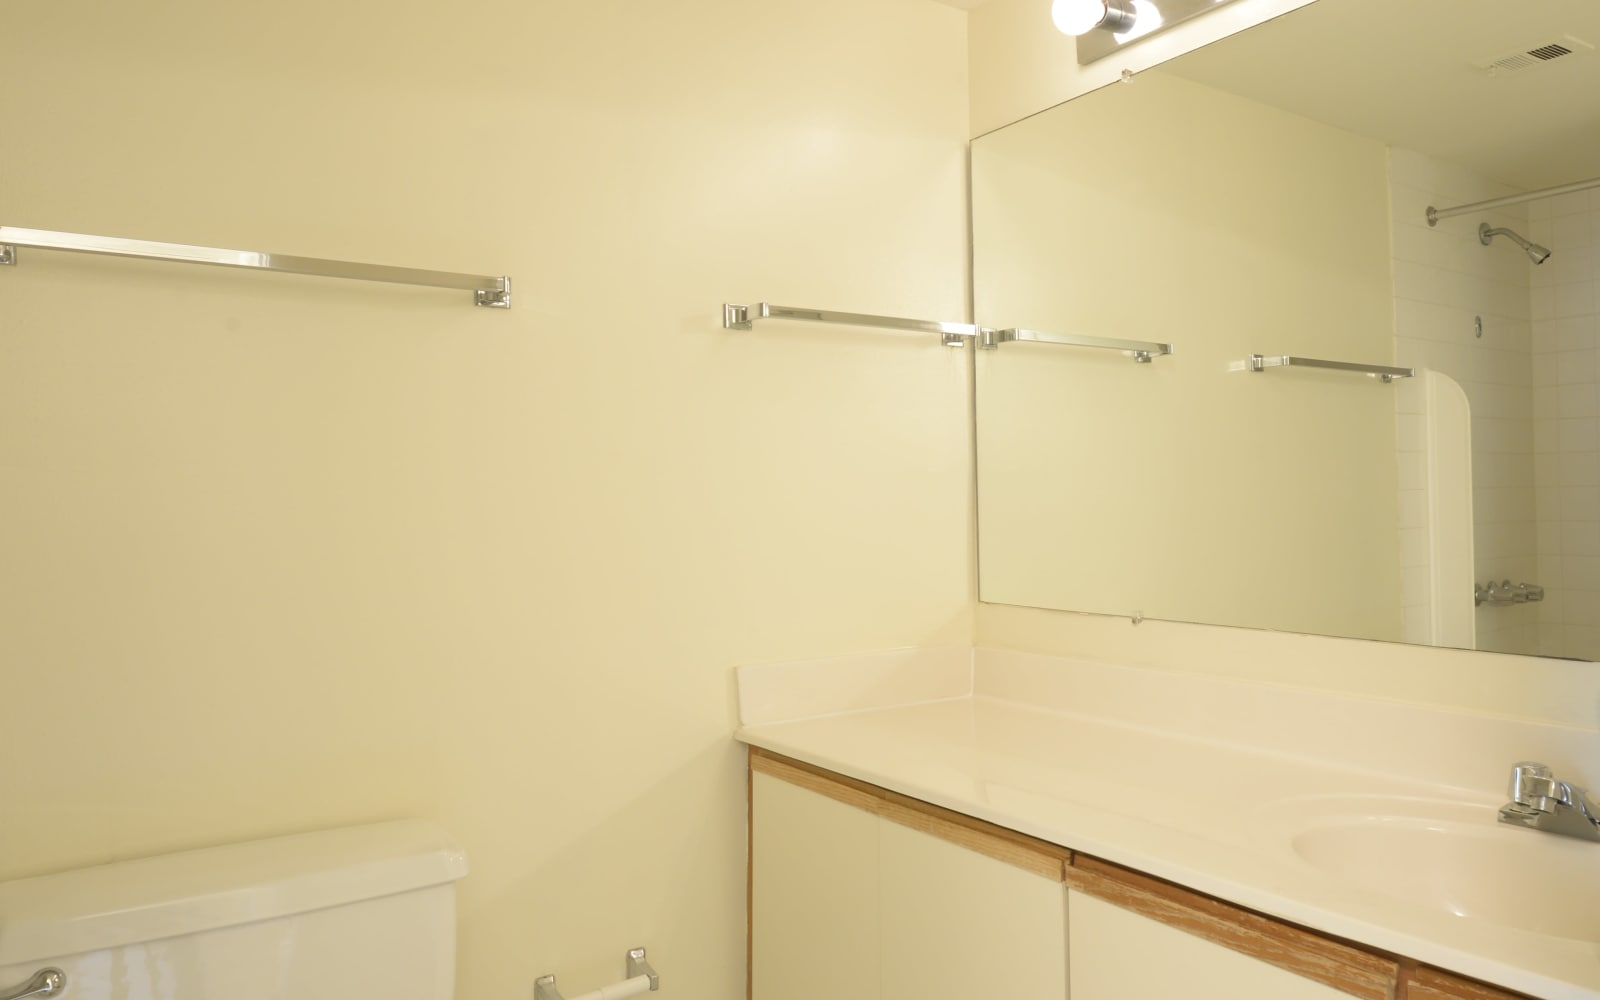 Bathroom at Charlesgate Apartments in Towson, Maryland